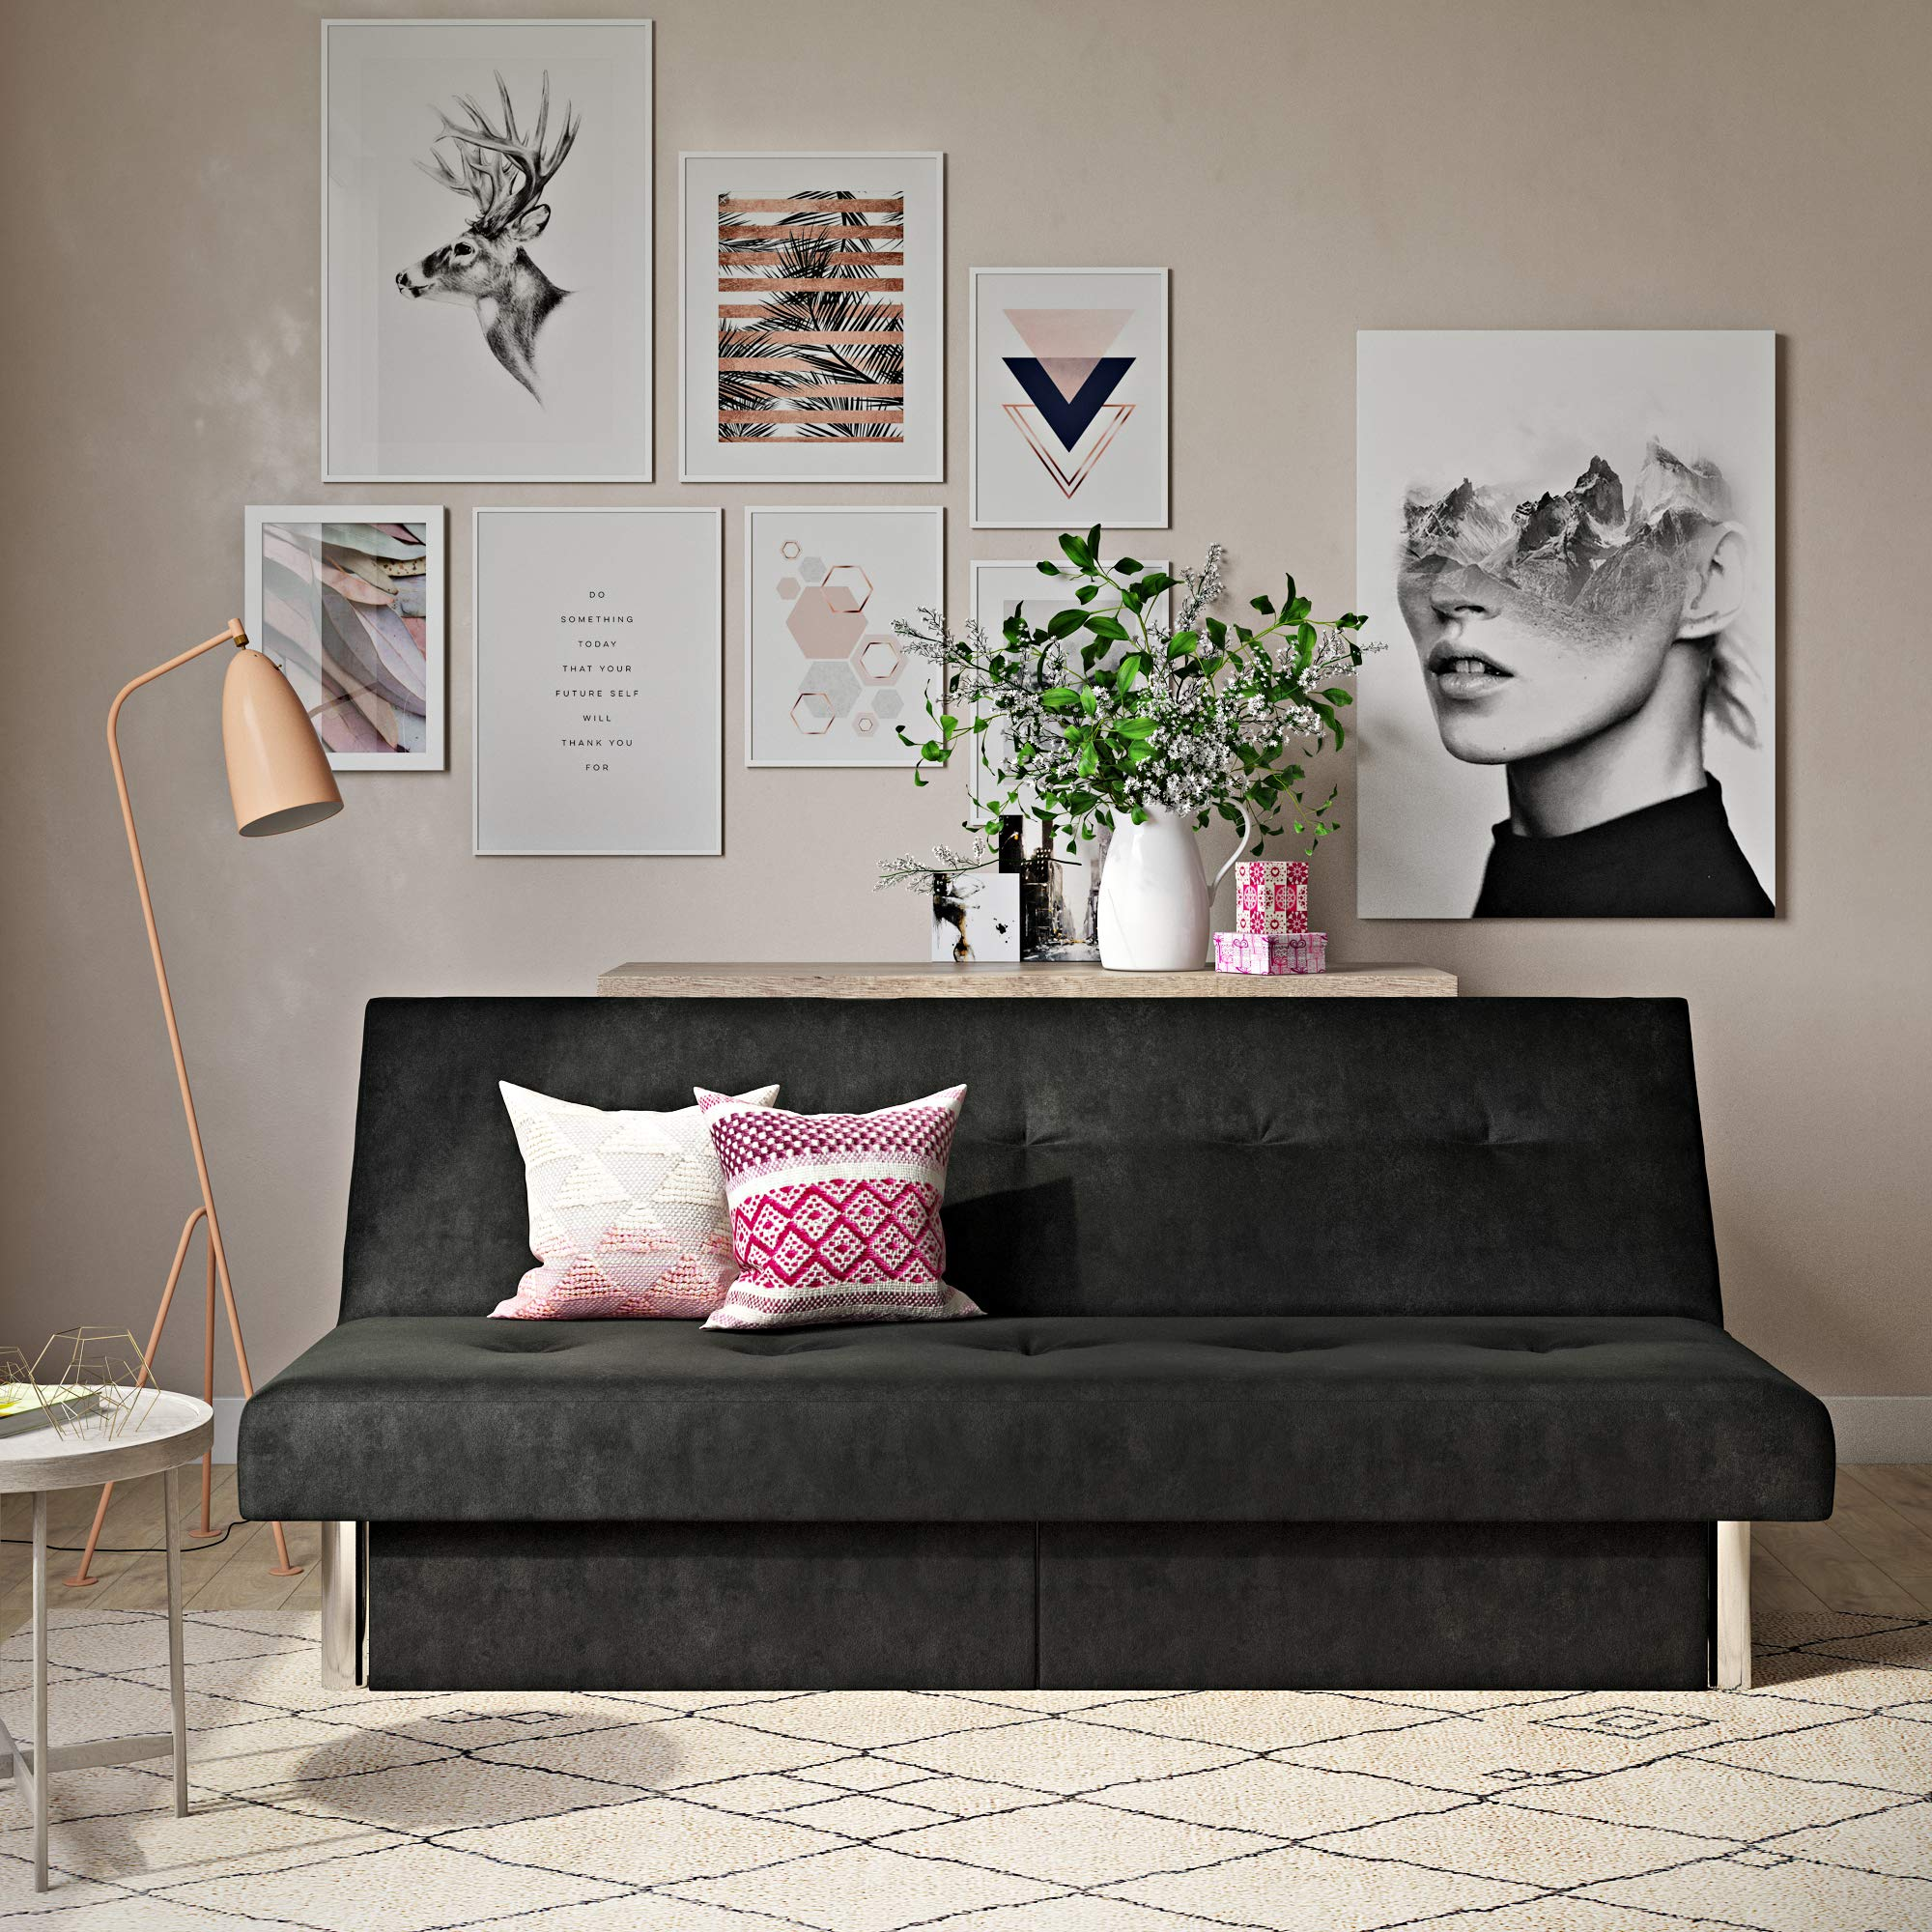 DHP Sola Convertible Sofa Futon with Space Saving Storage Compartments, Chrome Legs and Upholstered in Rich Black Microfiber by DHP